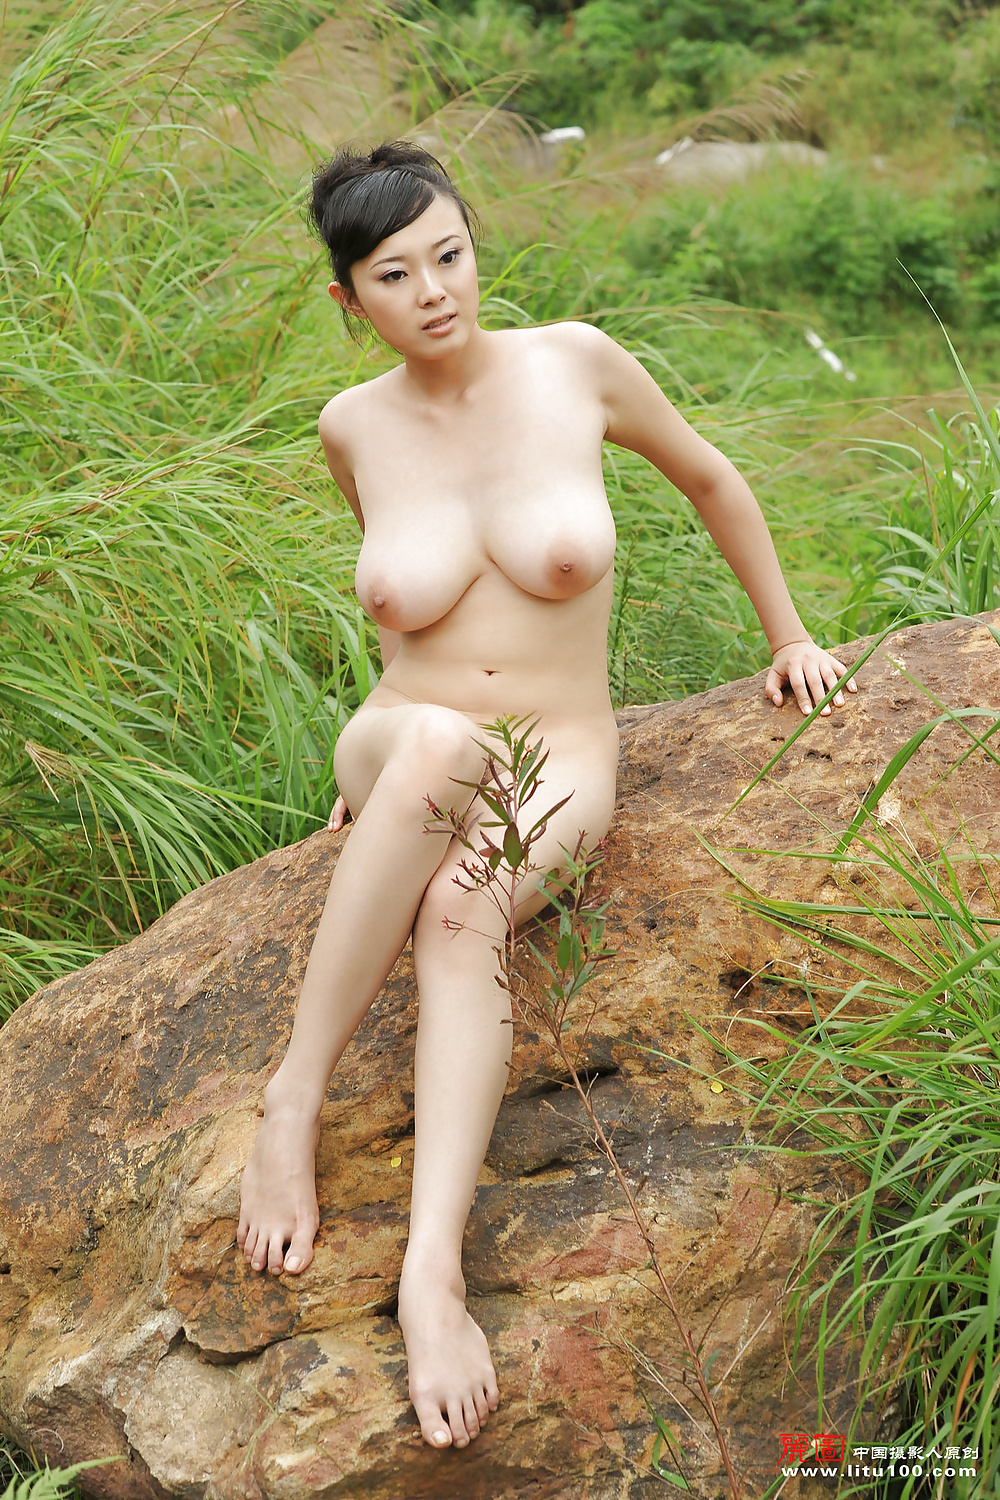 Fully Naked Chinese Girl Nude Girls Pictures